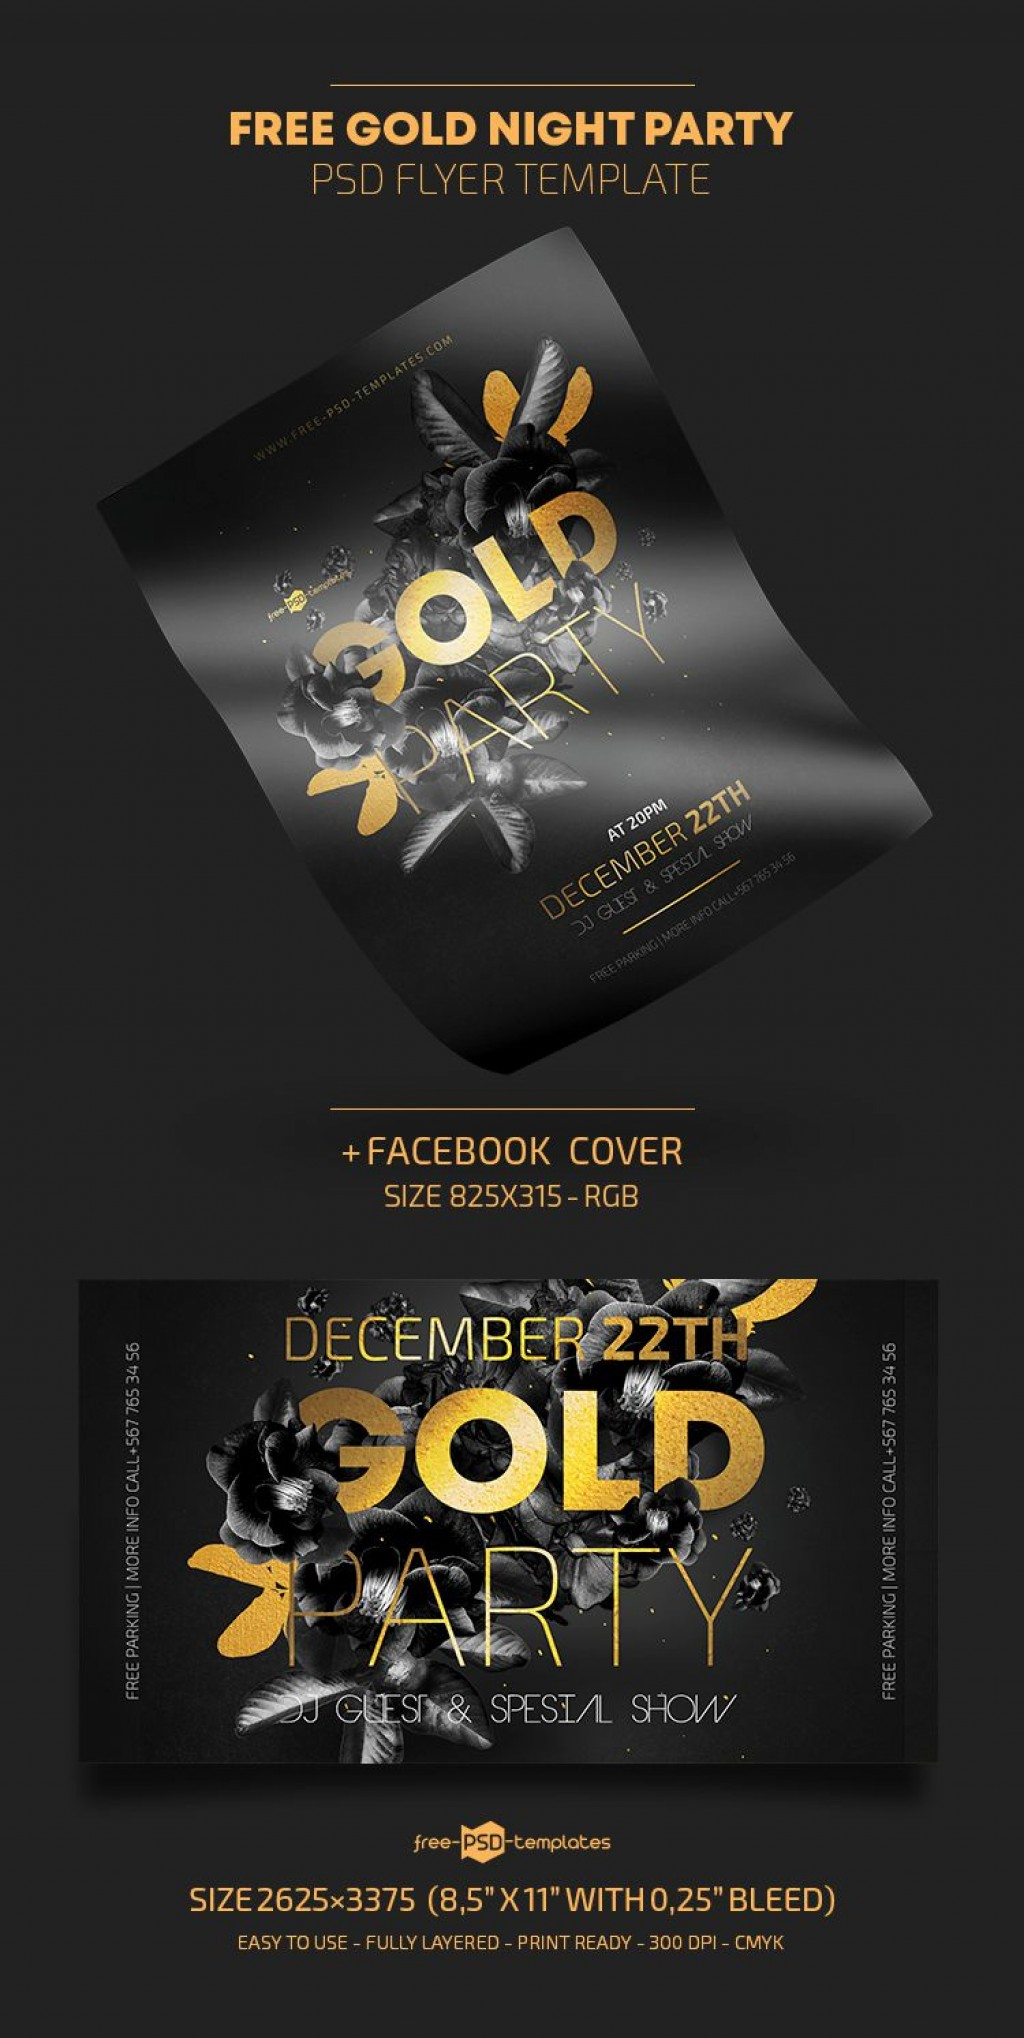 009 Marvelou Free Party Flyer Template For Photoshop Picture  Pool Psd DownloadLarge